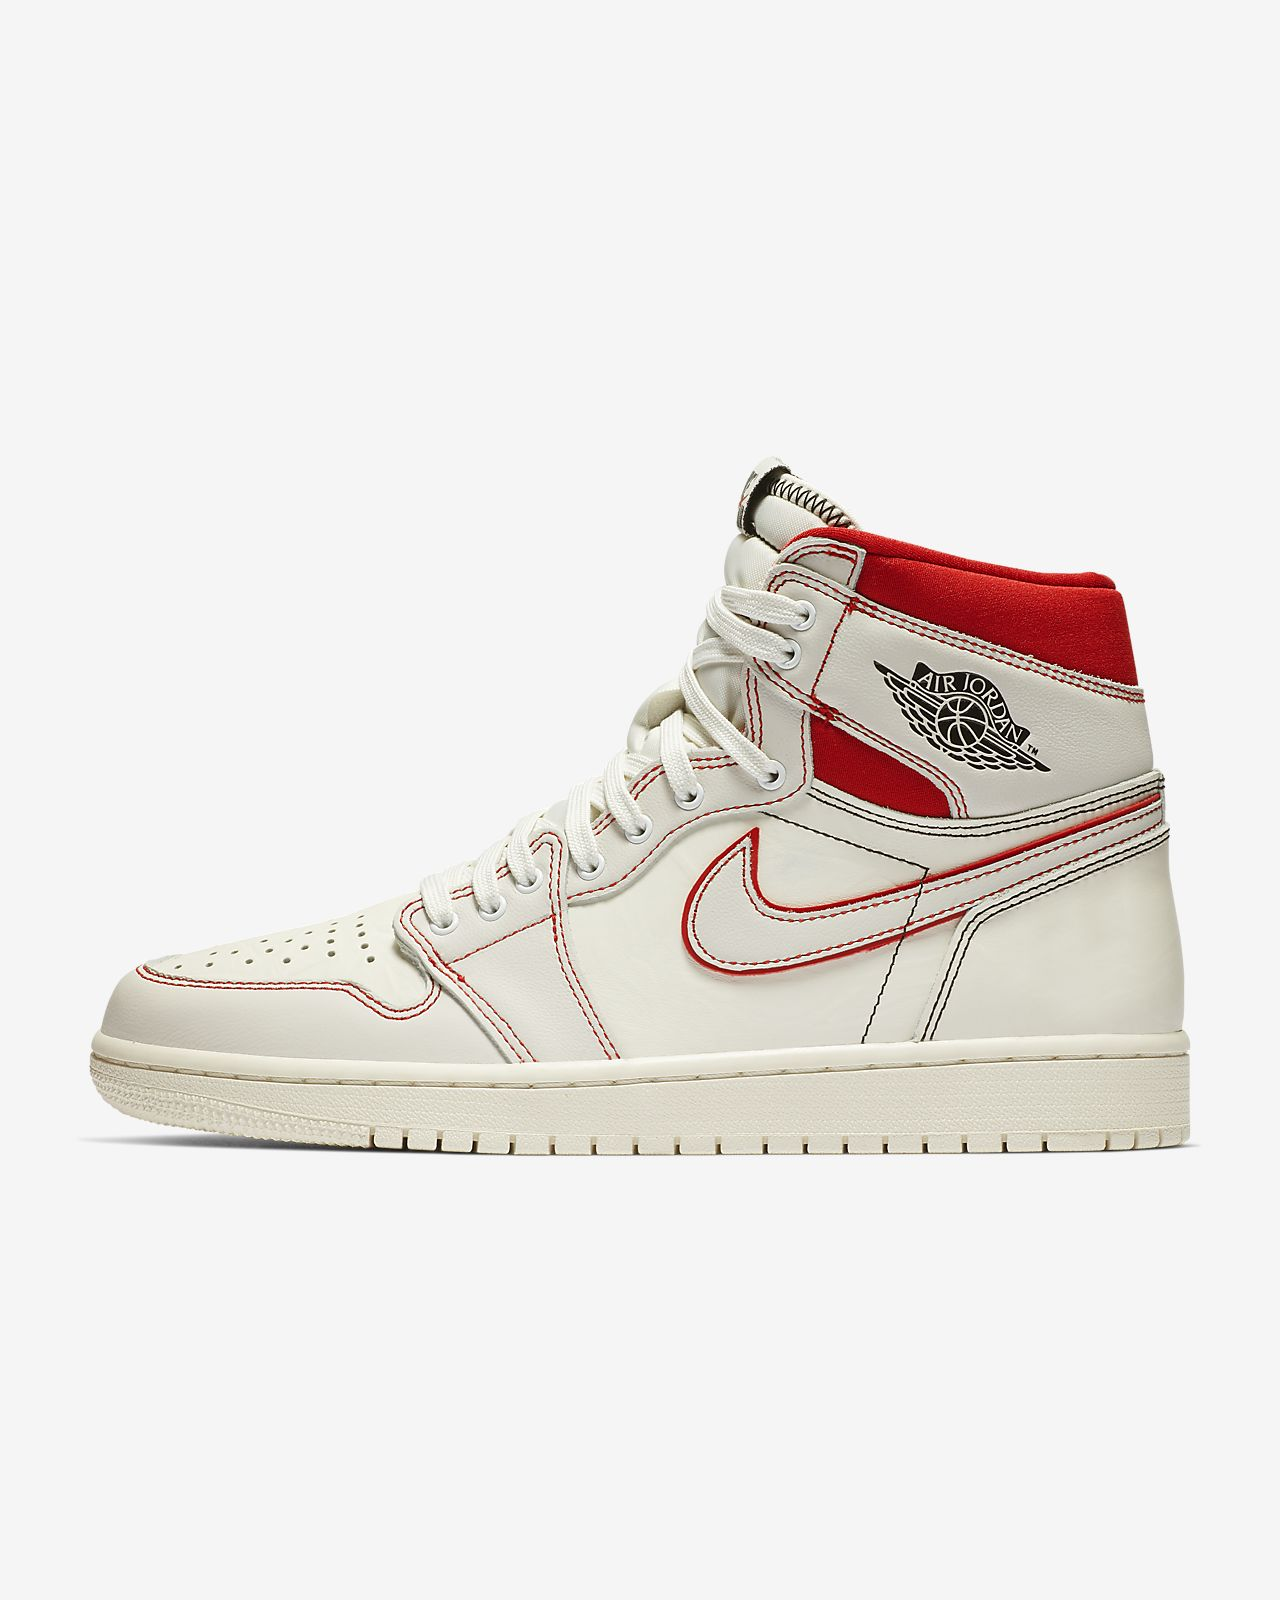 32f8d0abe61a28 Low Resolution Air Jordan 1 Retro High OG Shoe Air Jordan 1 Retro High OG  Shoe